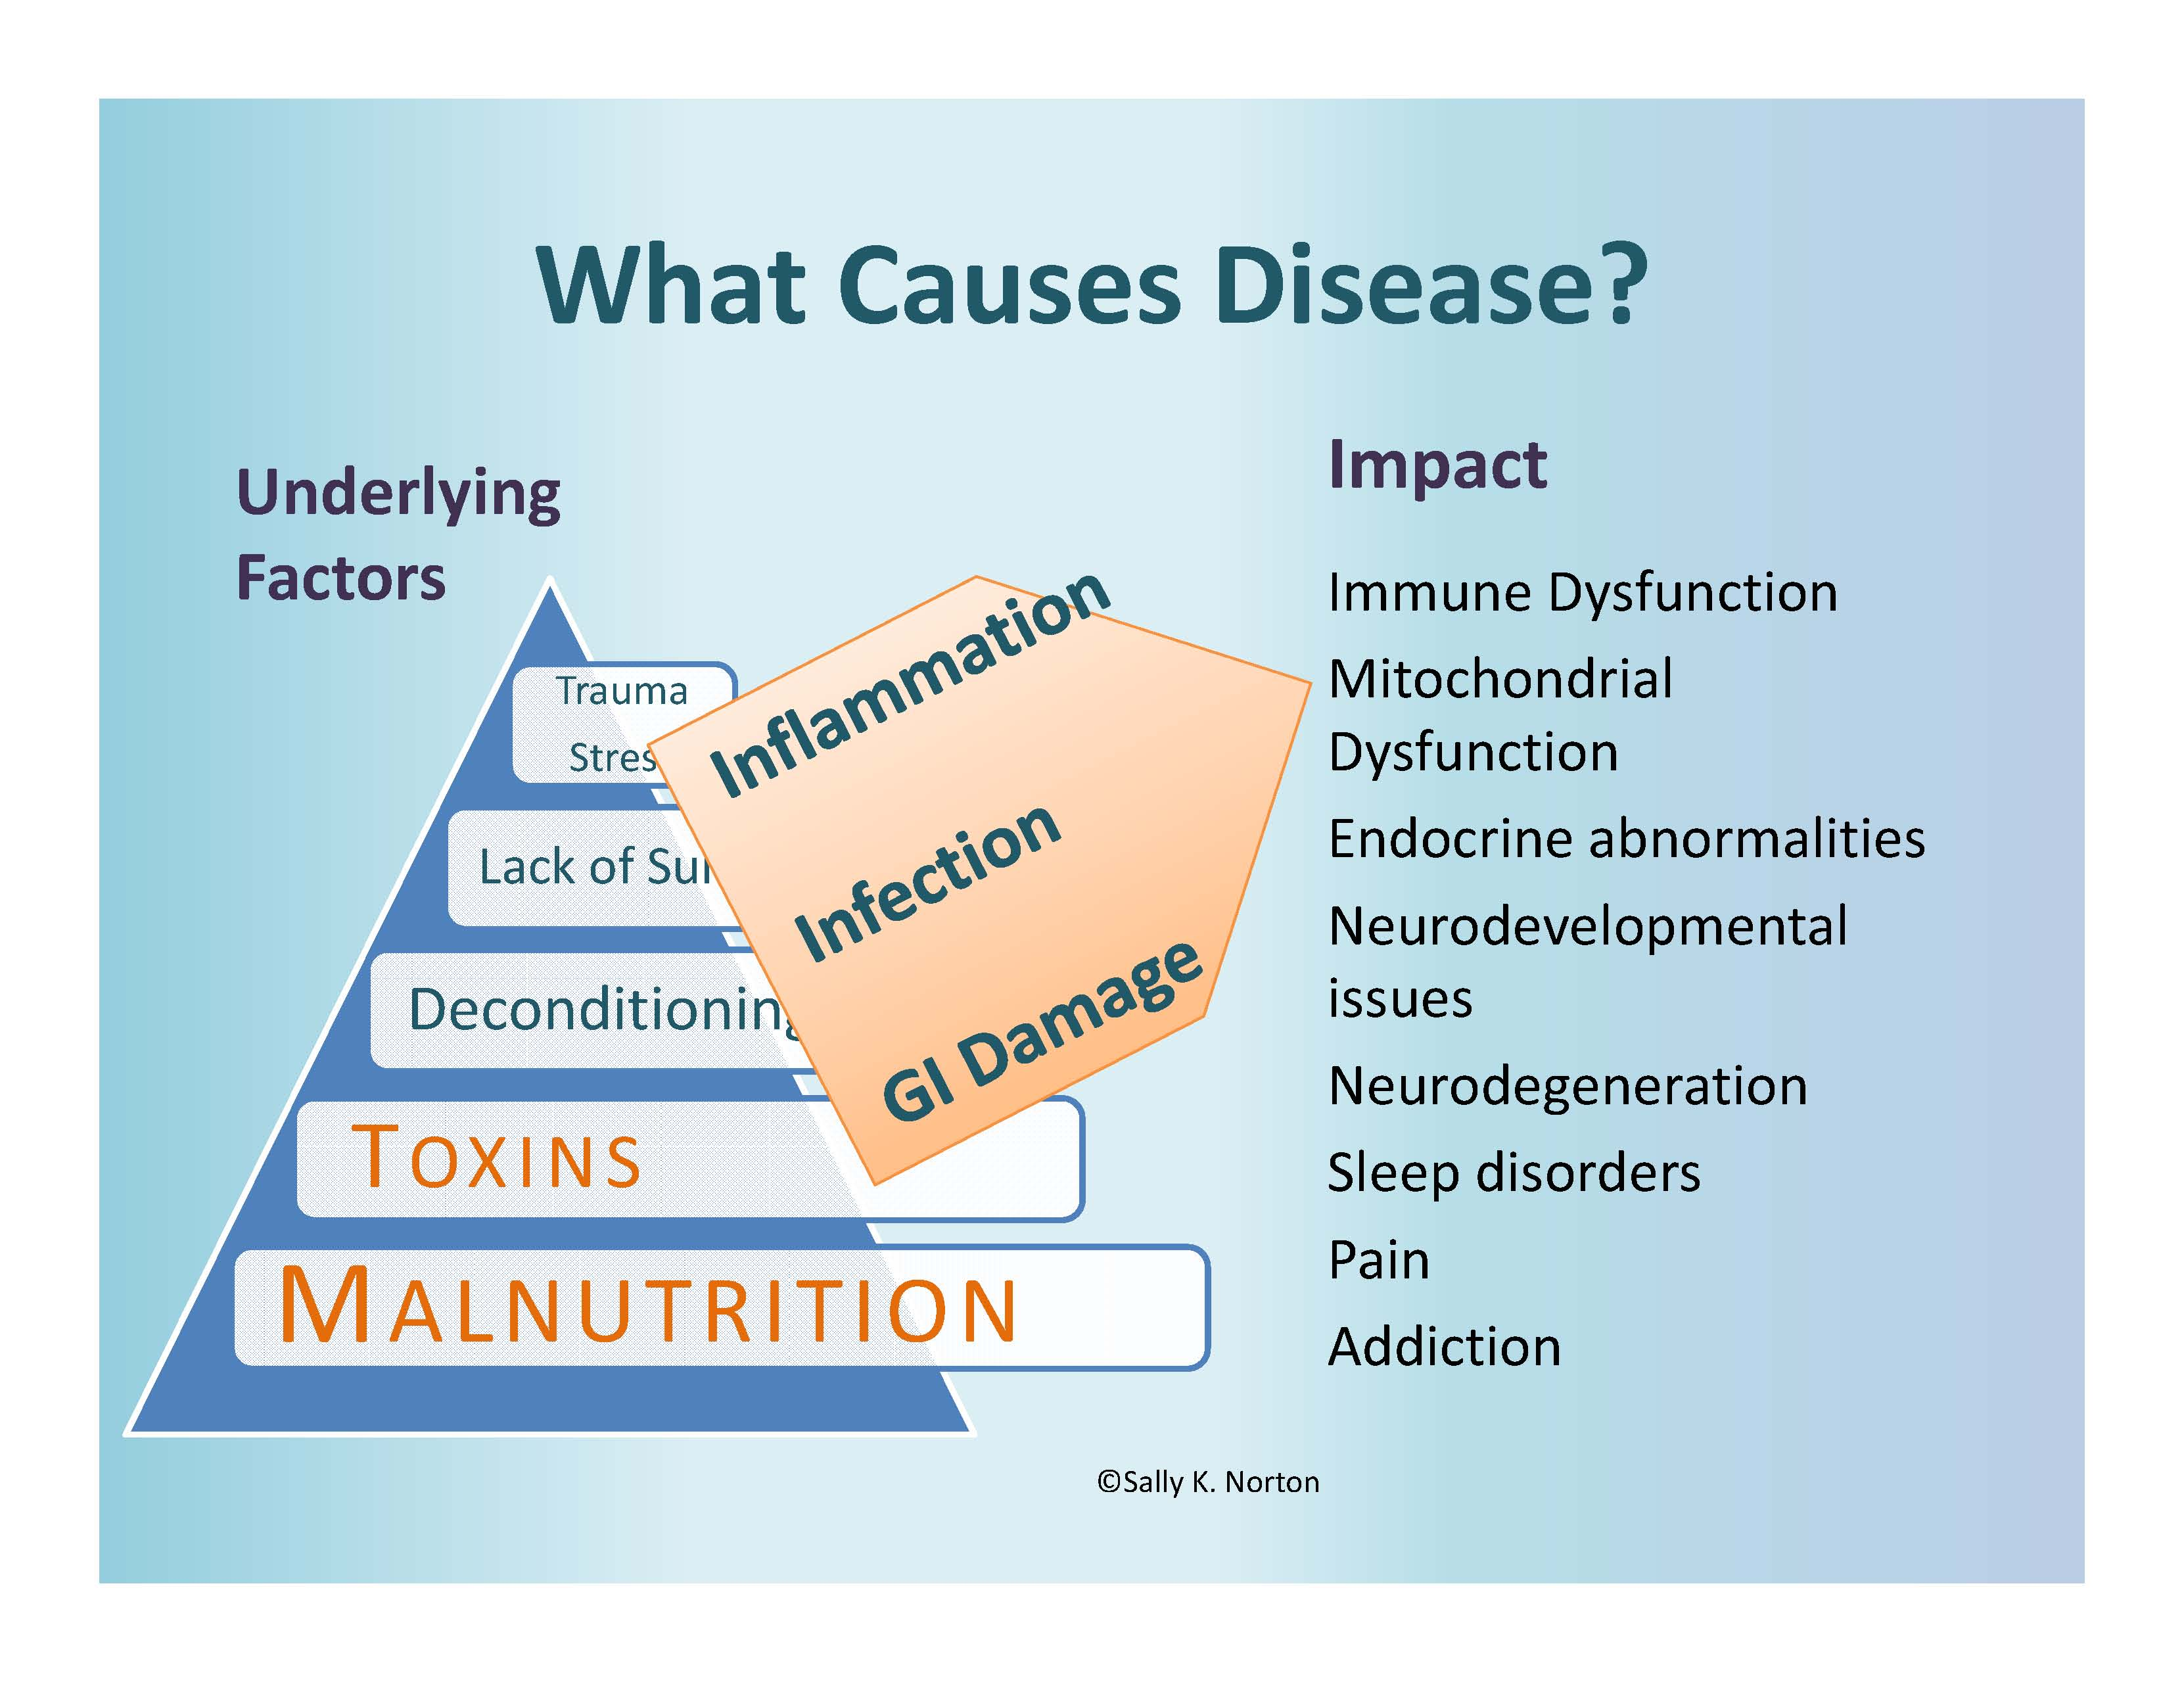 Underlying disease factors listed in a pyramid, which casue the proesses of inflammation, infection and GI damage, which lead to list of medial problems